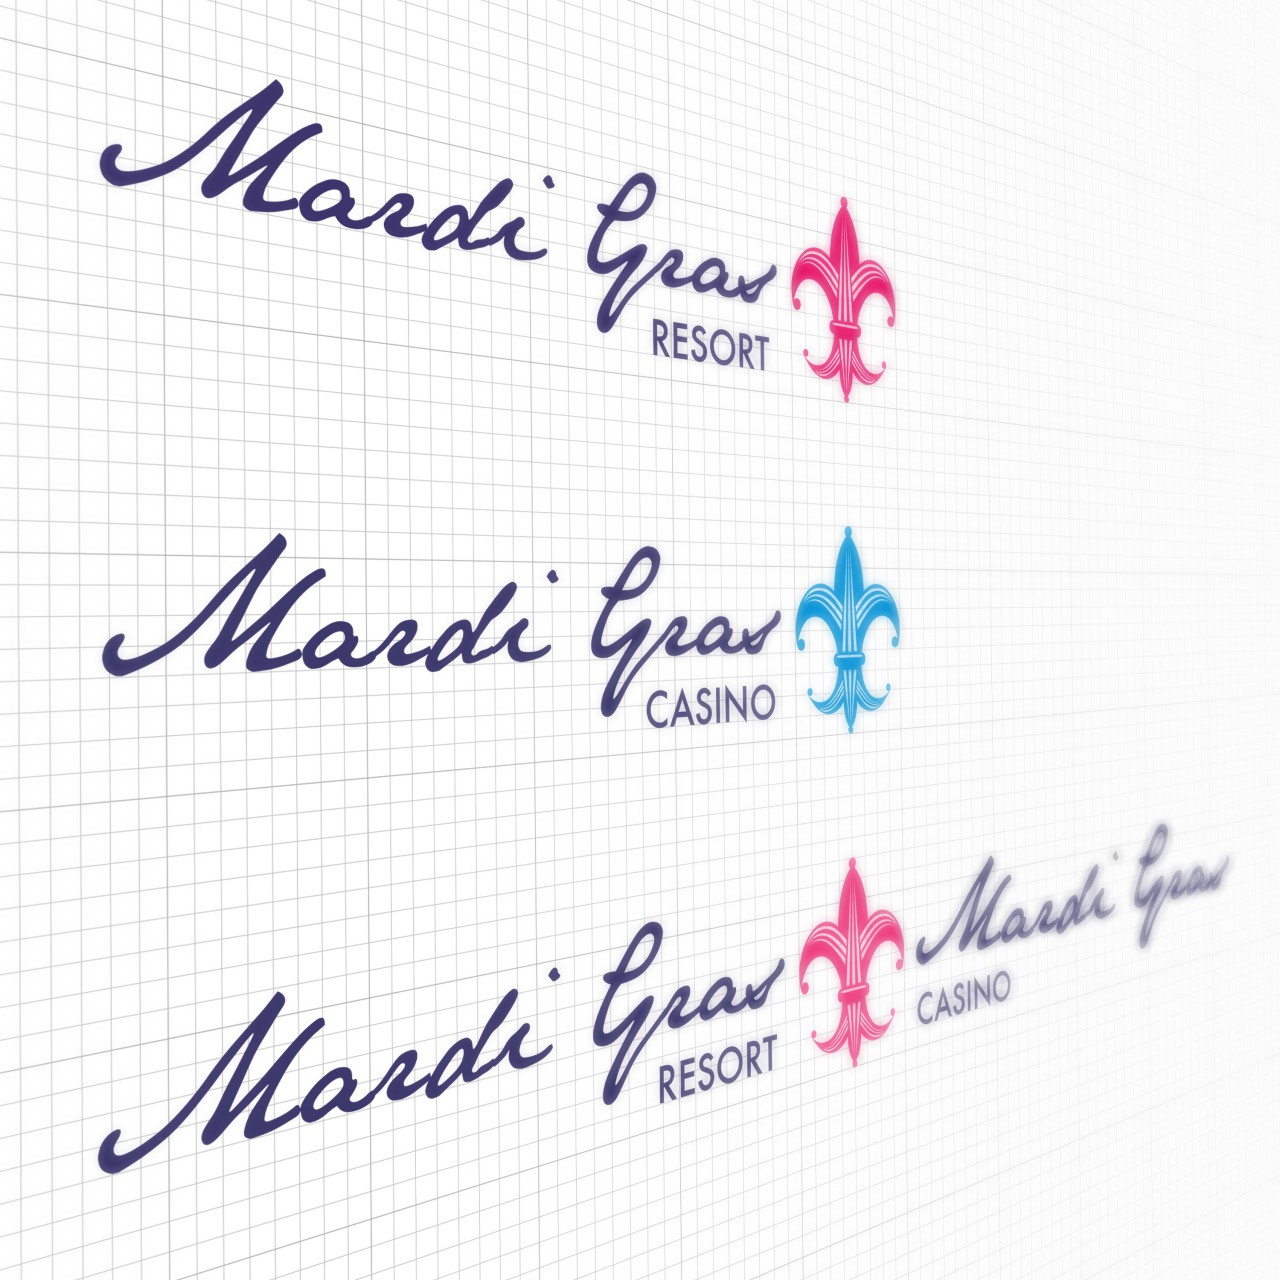 Image of Mardi Gras Resort logo alternates